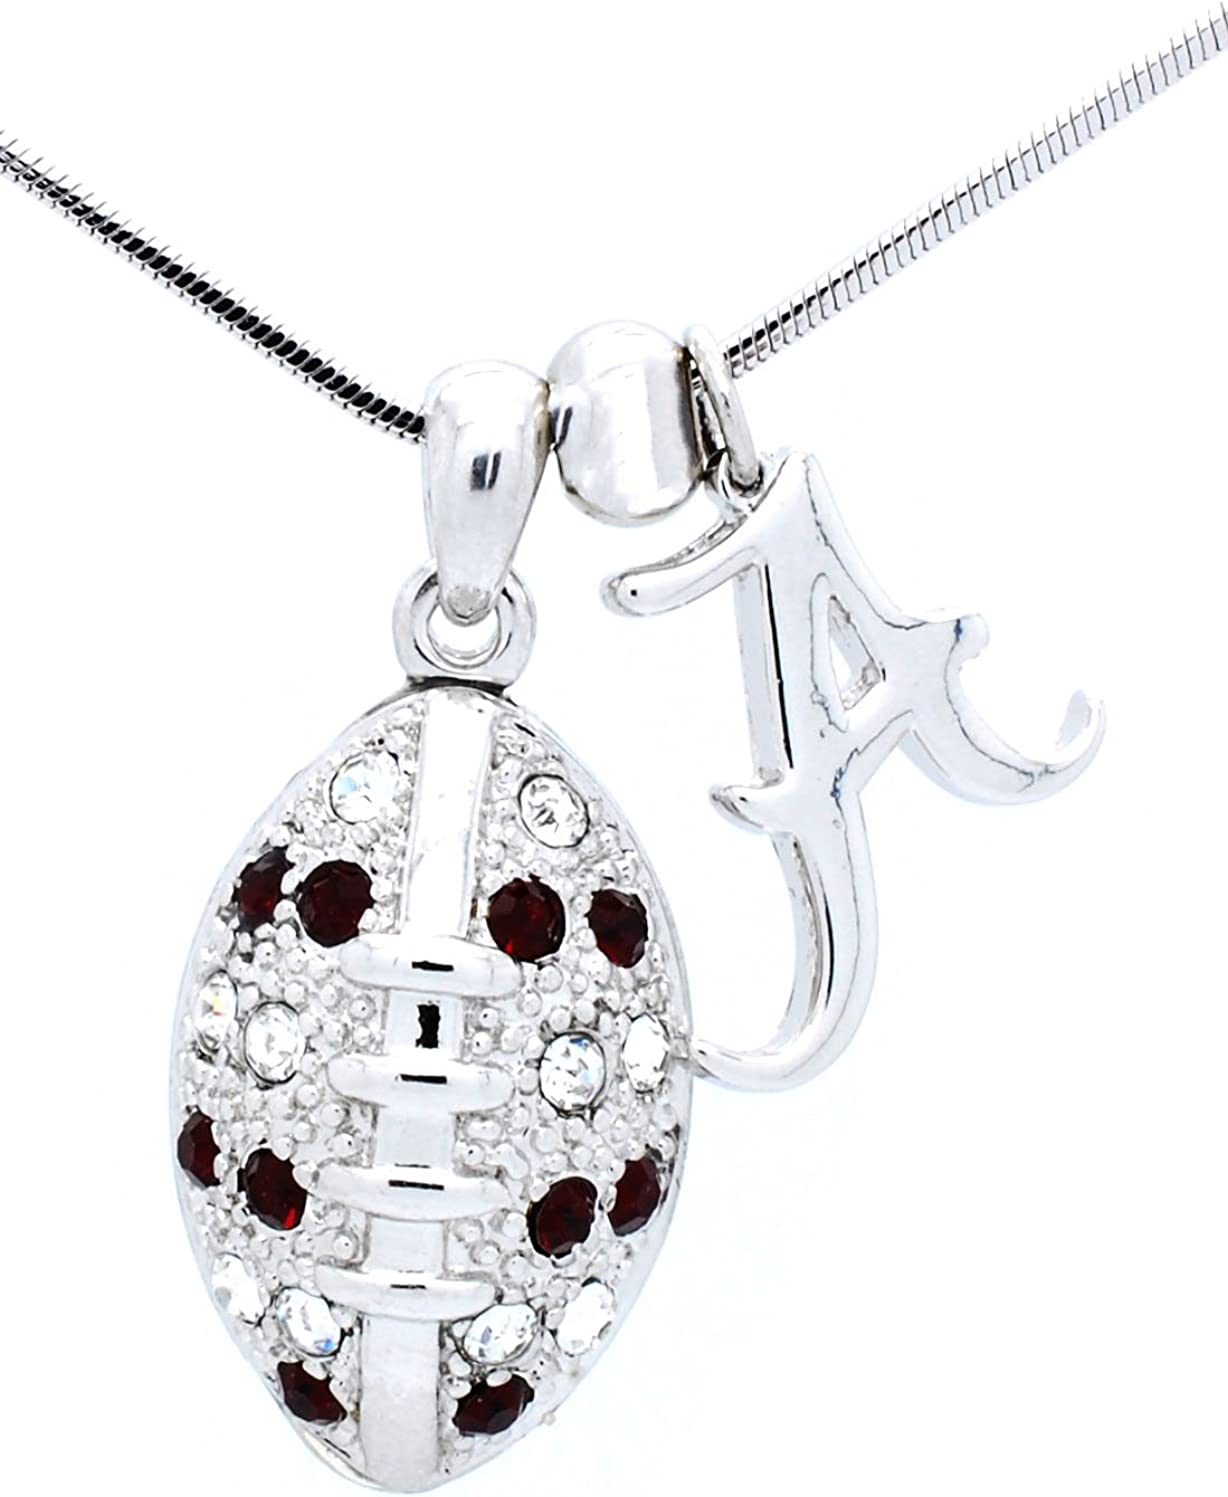 Violet Victoria & Fan Star Jewelry College Football Necklace - Crystal - Large